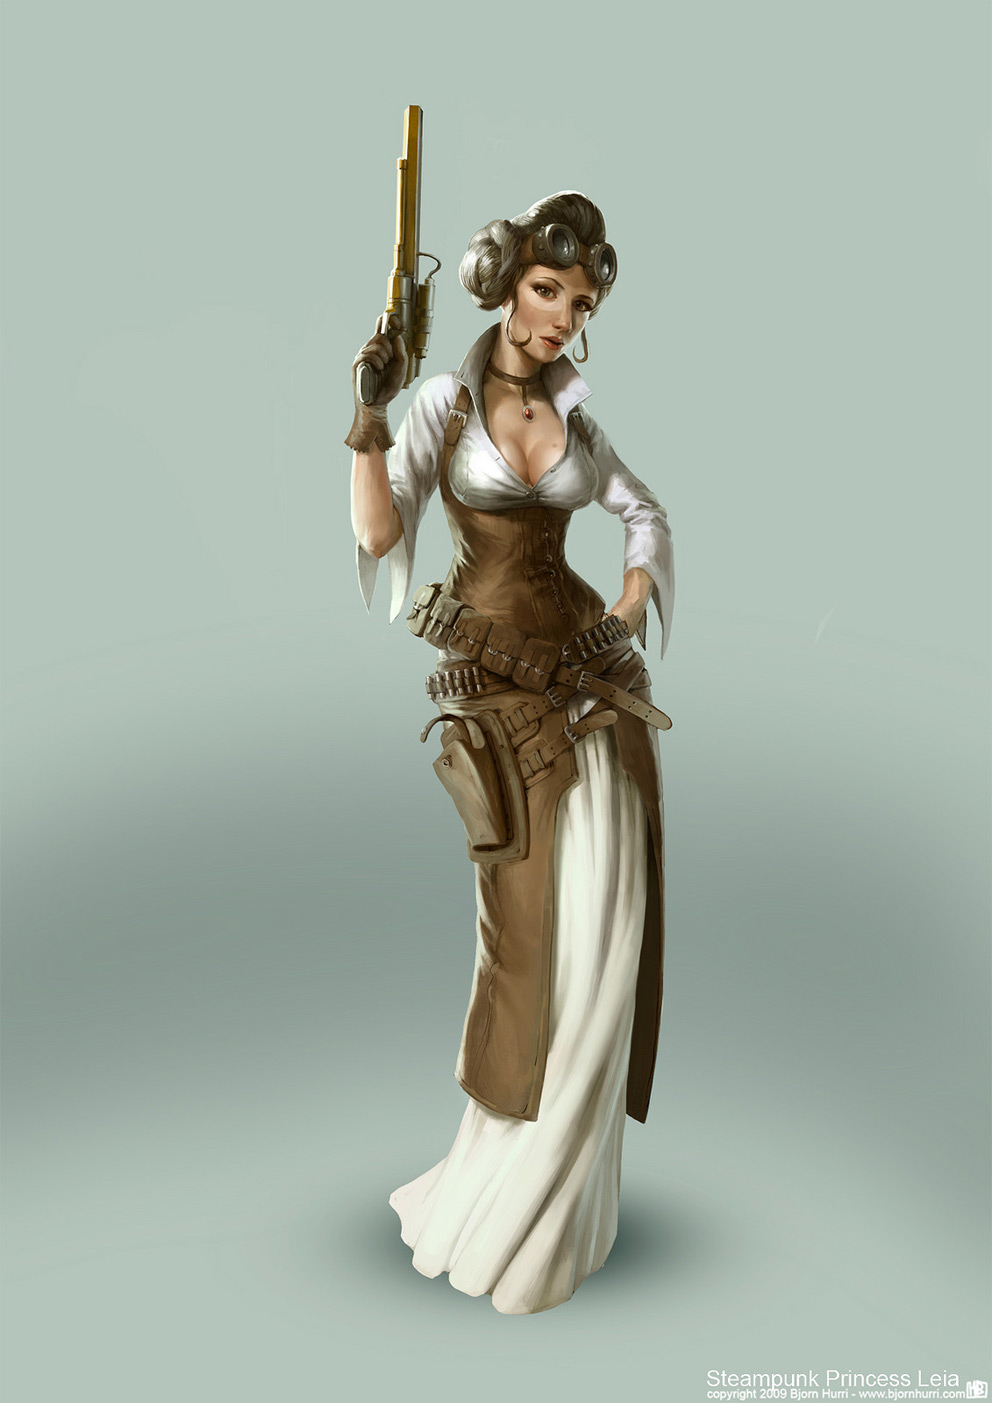 Character Design Bjorn Hurri Steampunk Star Wars Leia